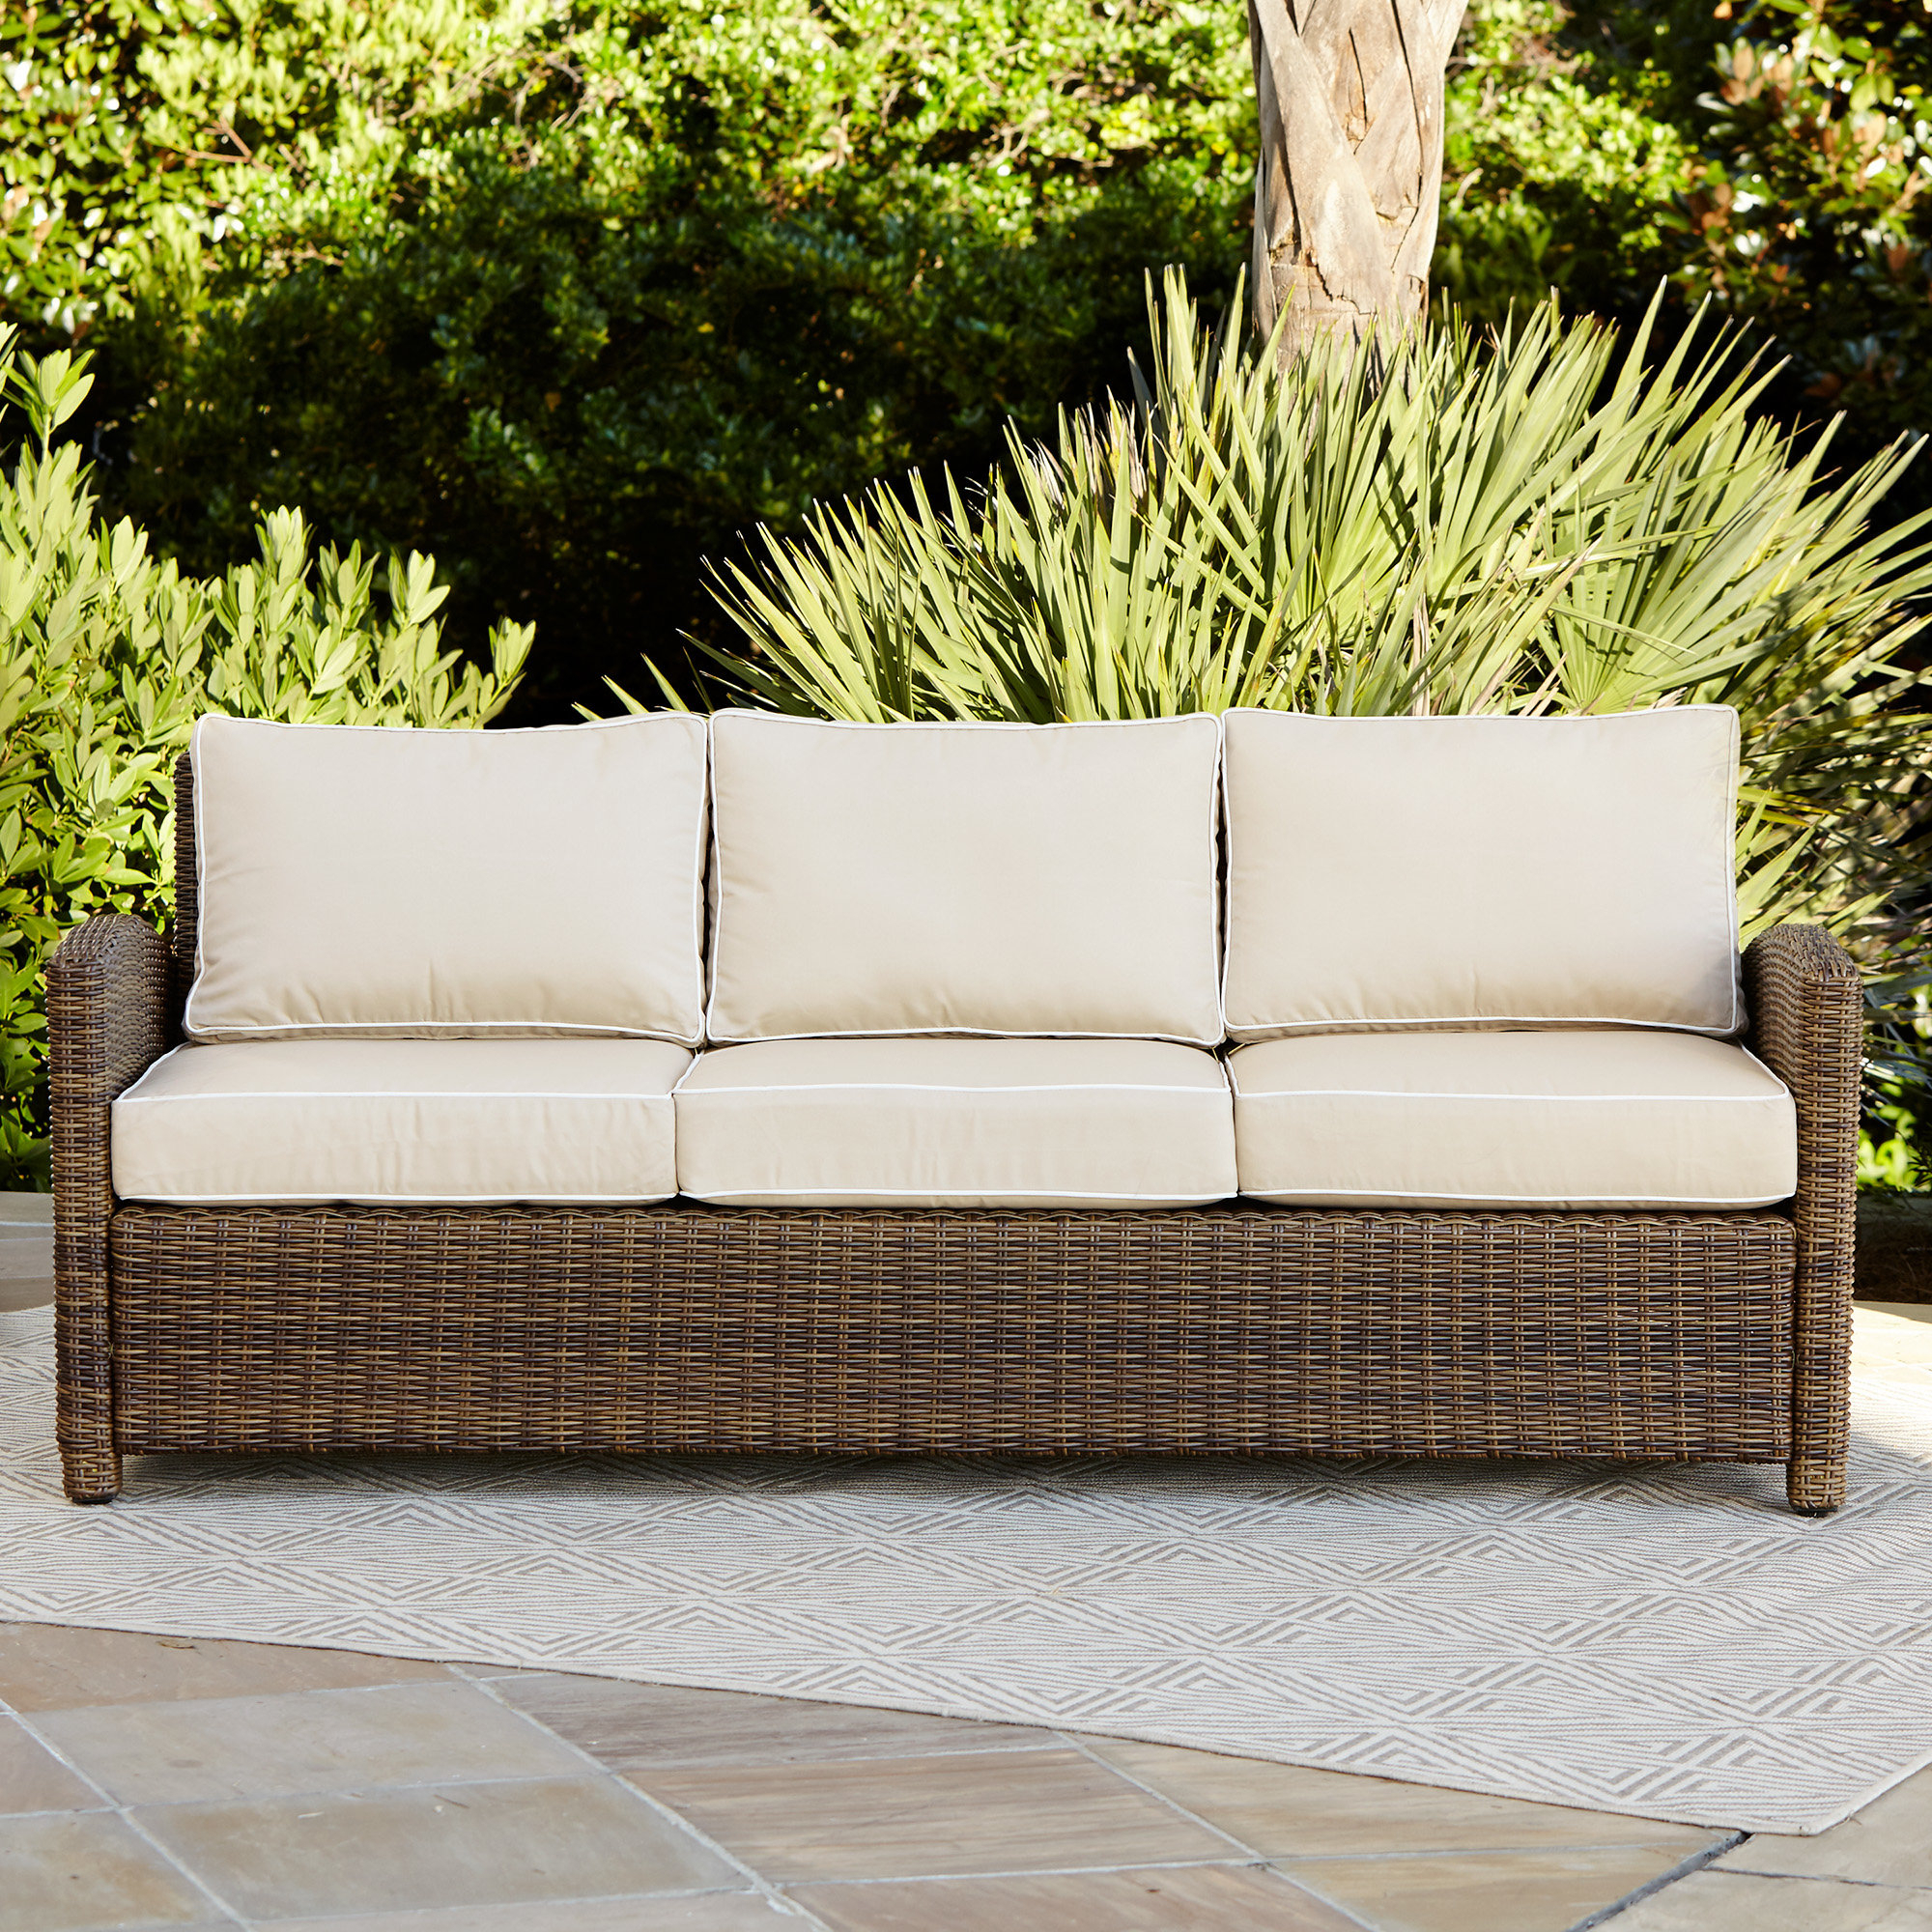 Farmhouse & Rustic Outdoor Sofas (View 11 of 20)